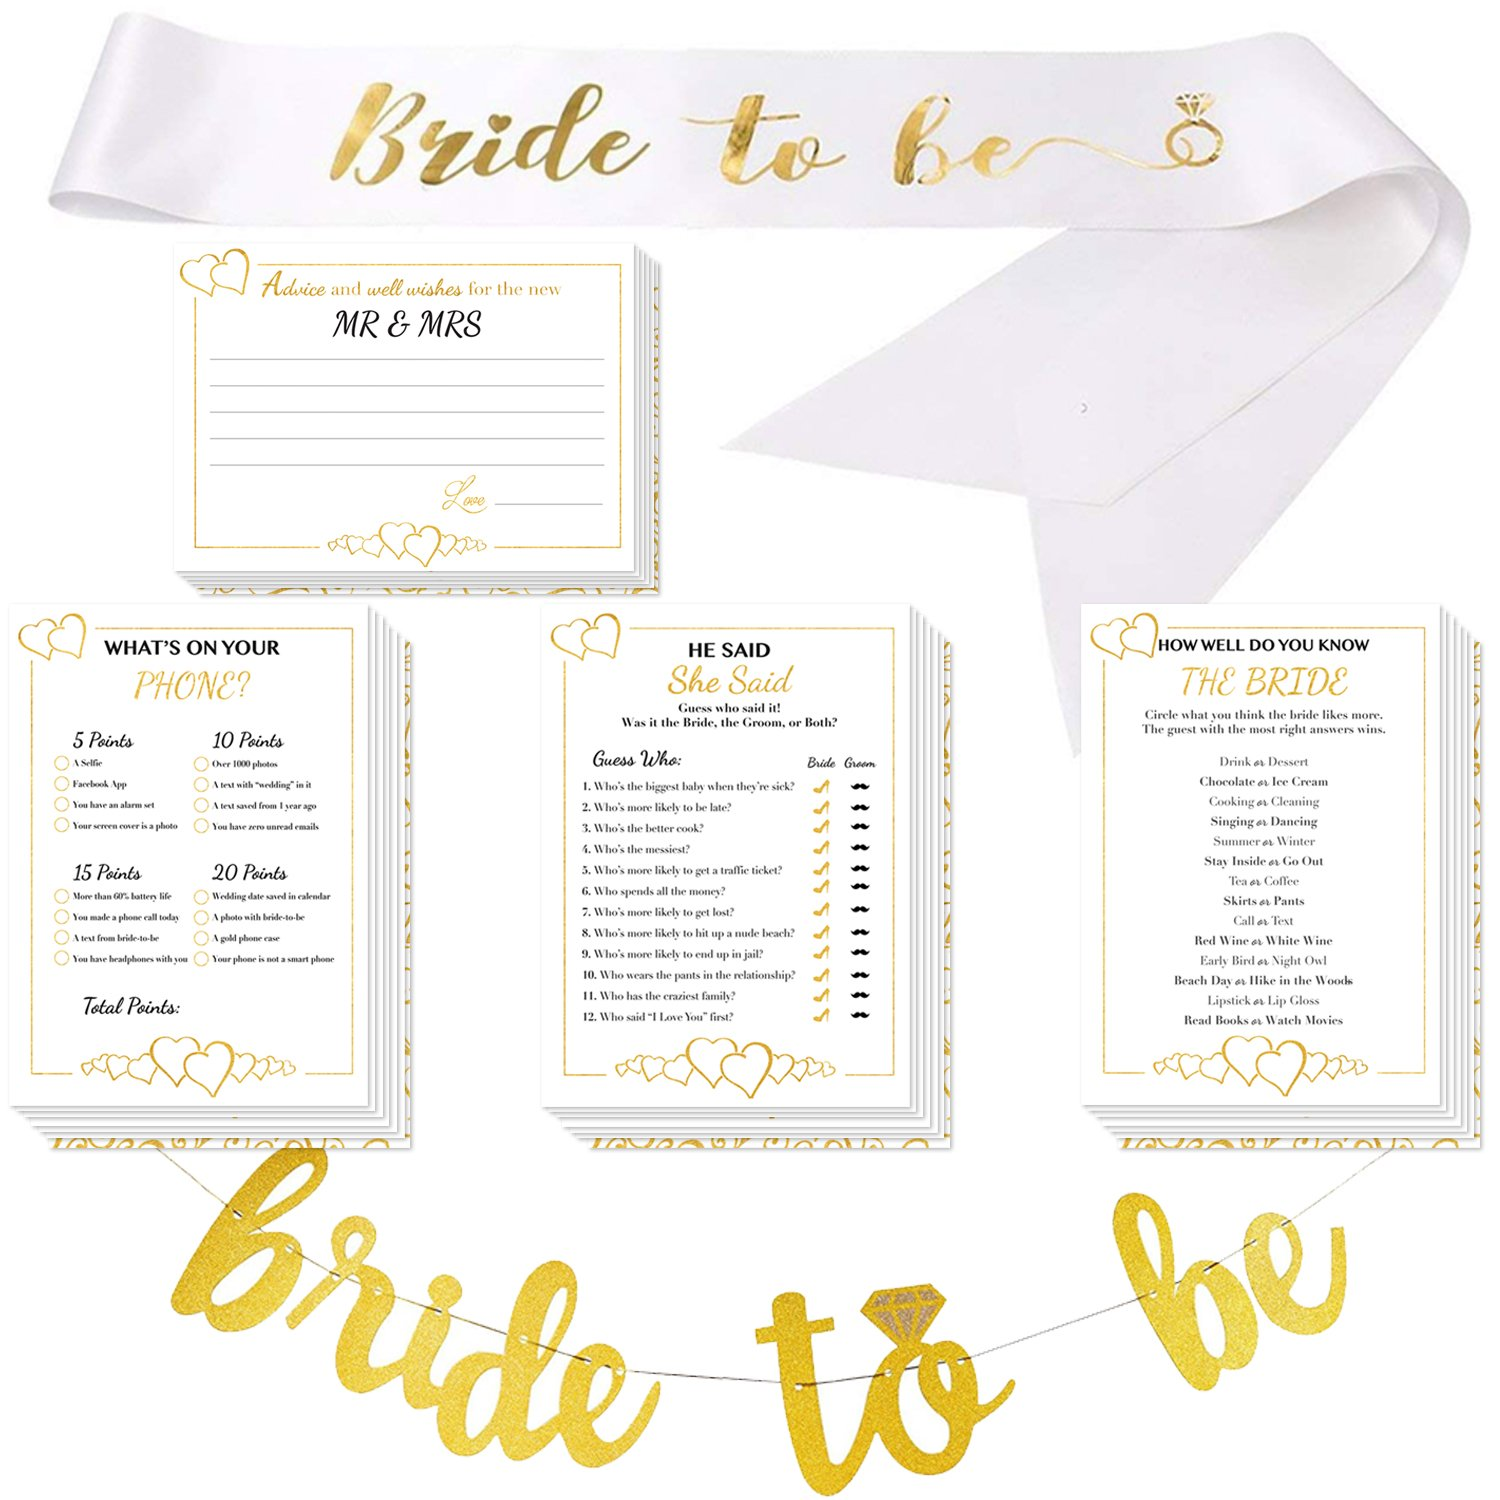 Bridal Shower Games with Bride-to-be Gold Banner & Bride to be Sash - 50x5 Wedding Party Cards | Alpine Celebrations